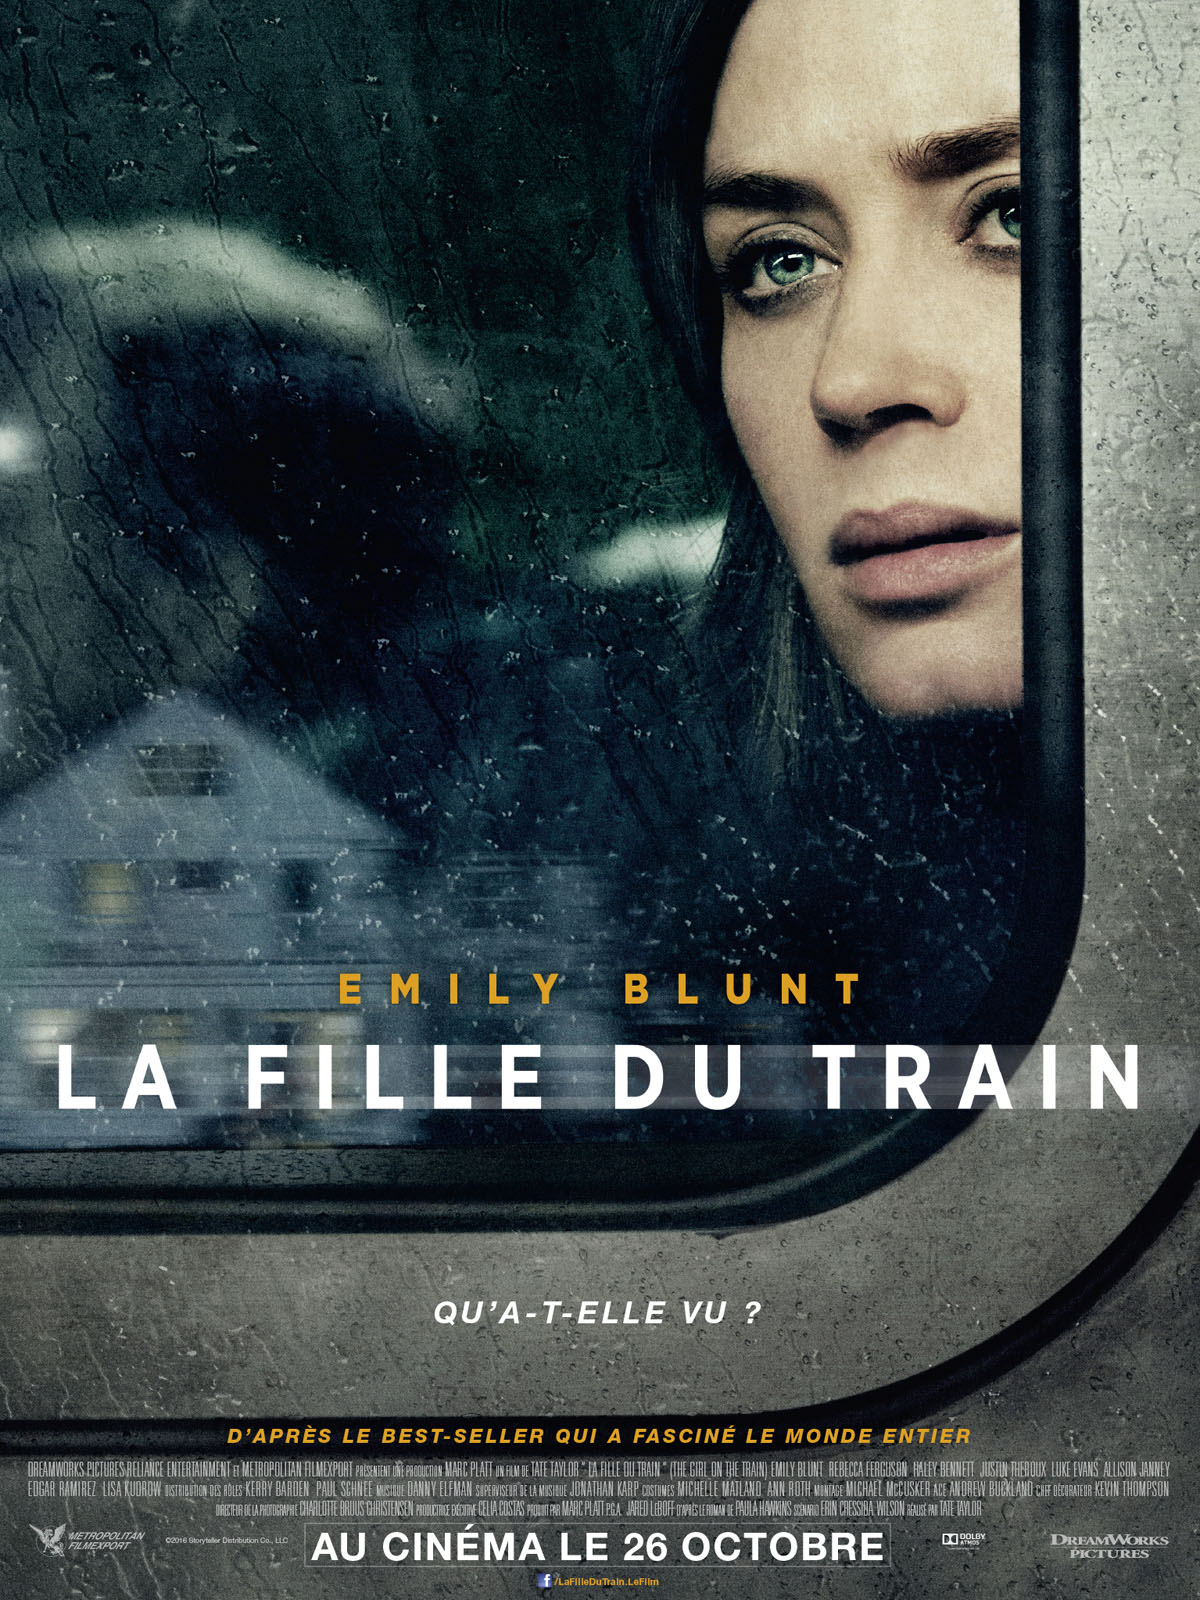 Achat La Fille du train en Blu Ray - AlloCiné